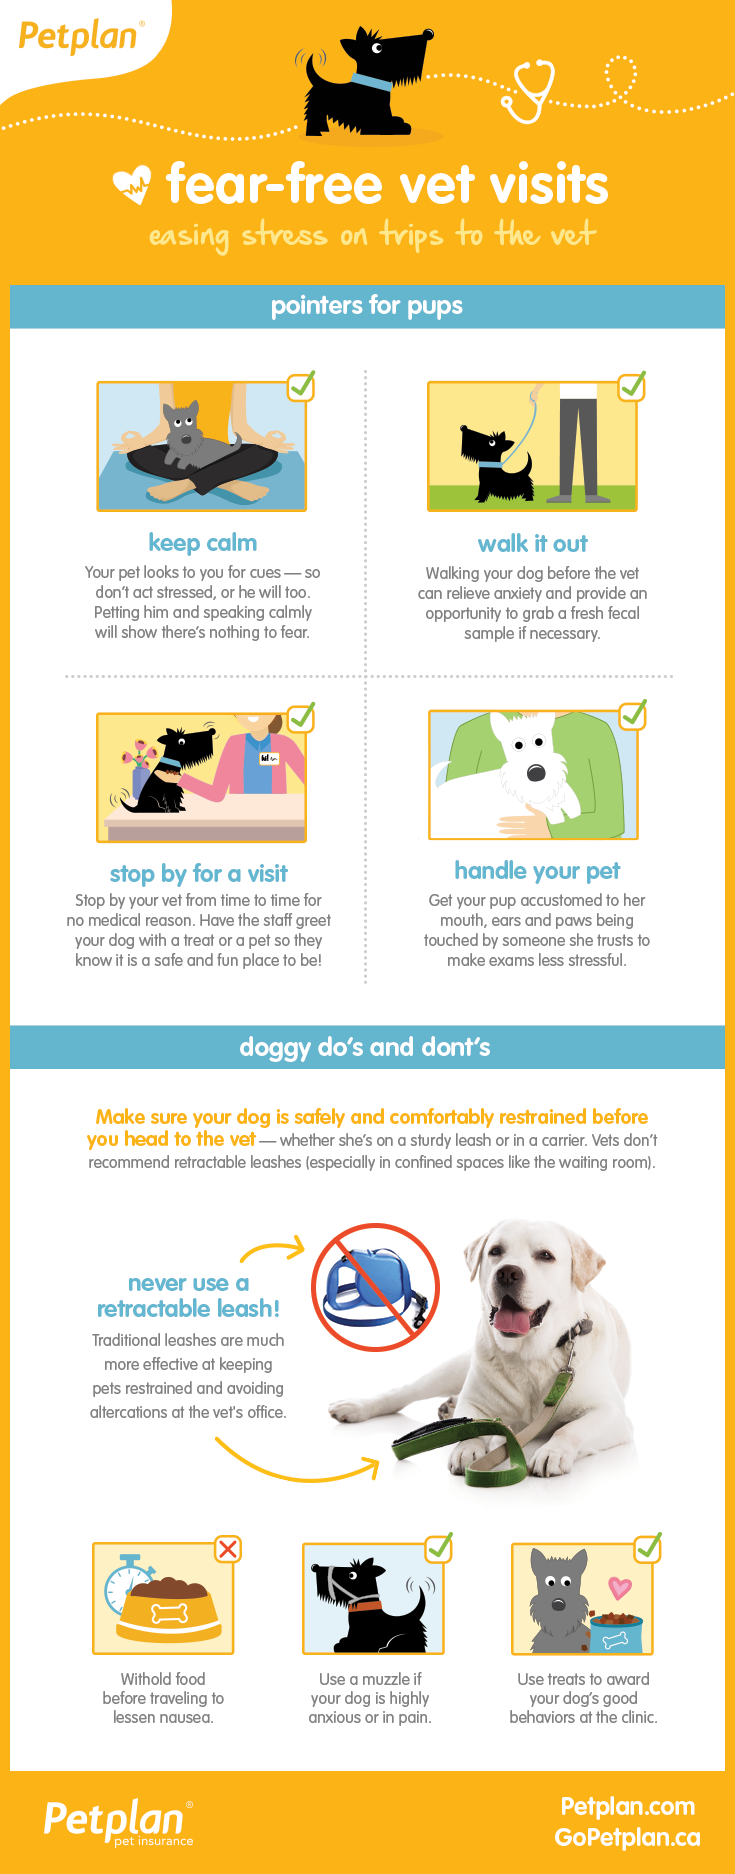 Take The Stress Out Of Your Pet S Next Visit To The Vet With These